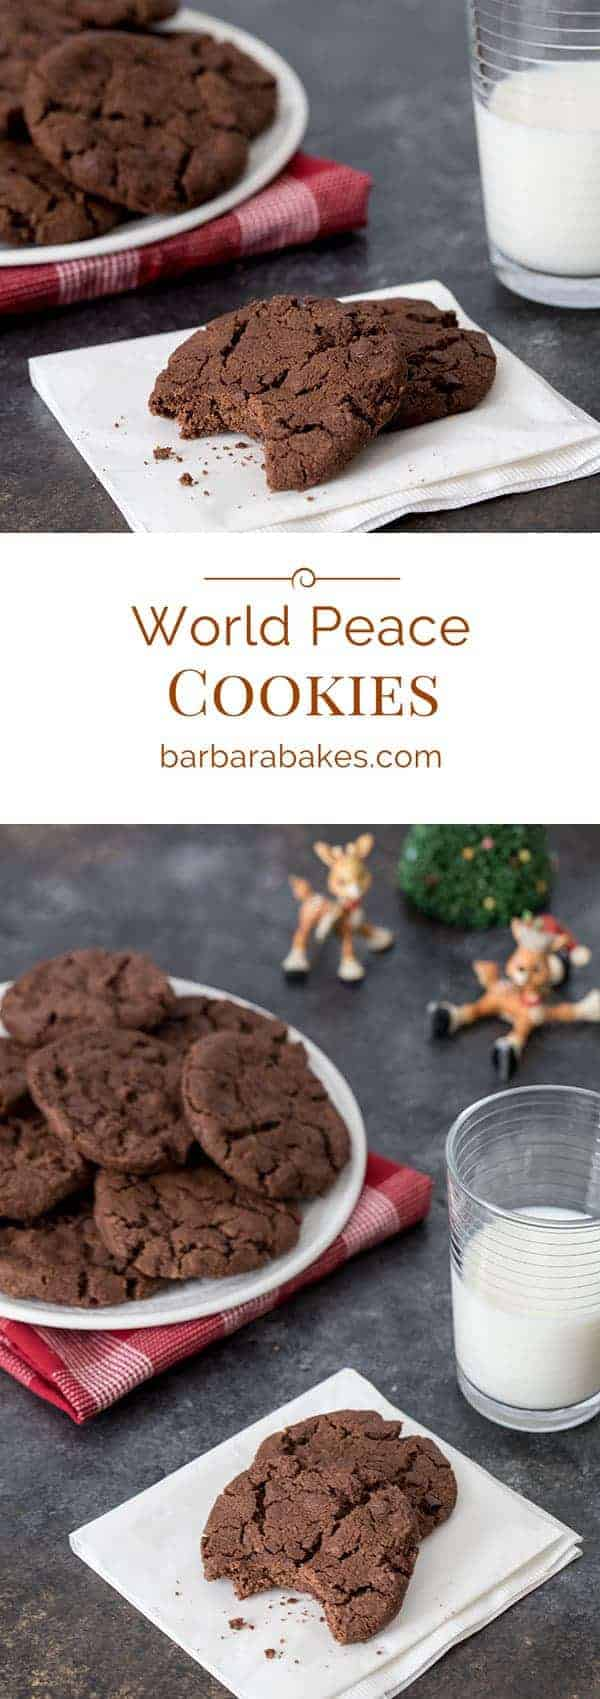 World Peace Cookies titled photo collage